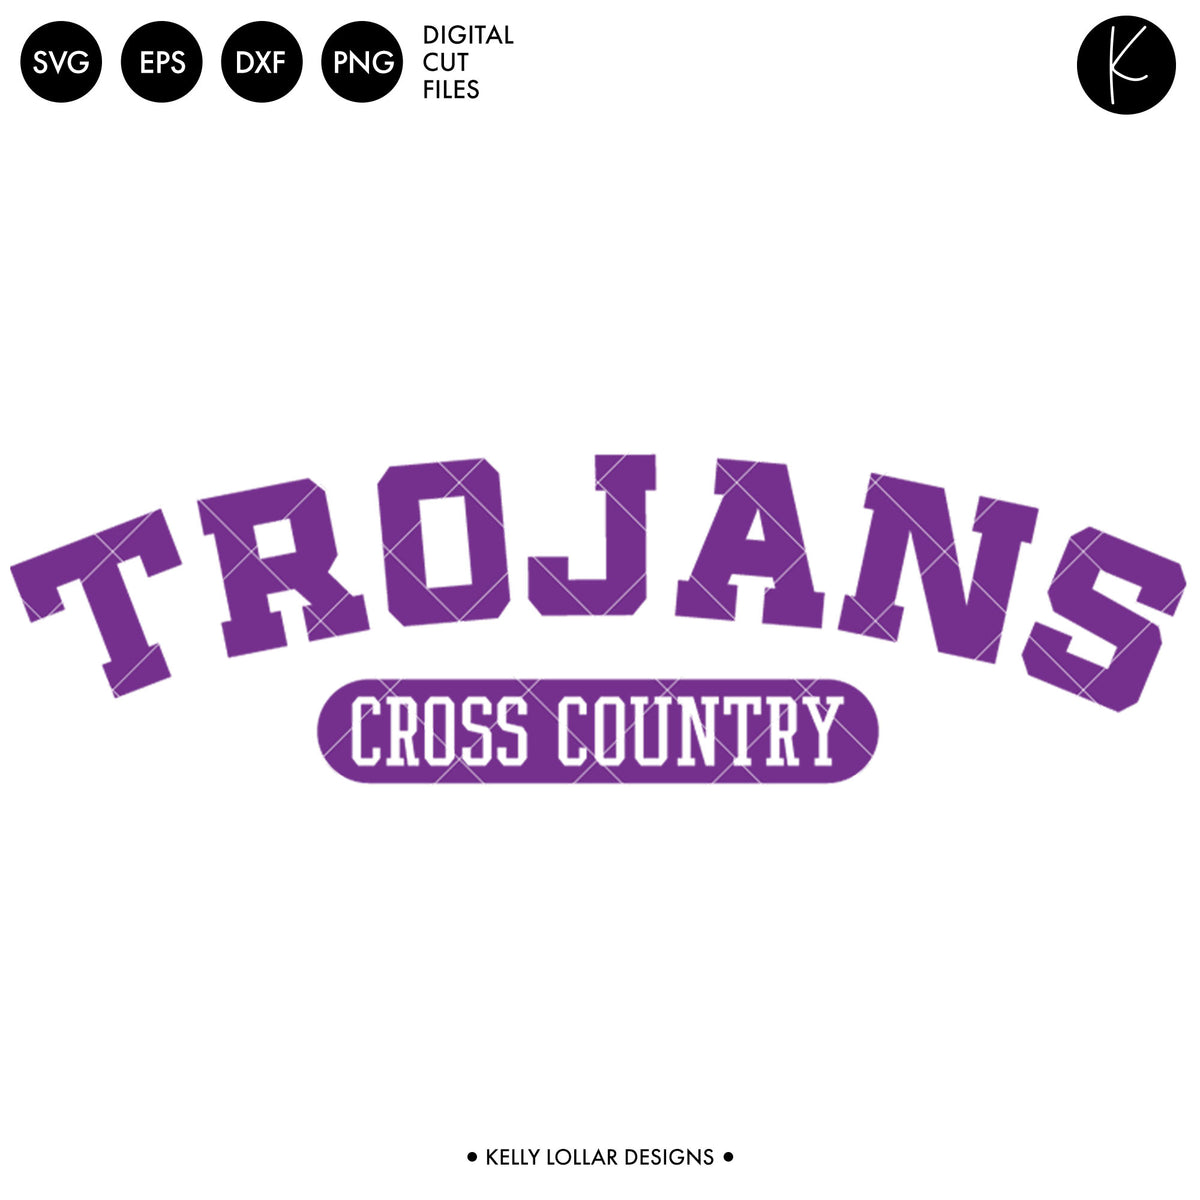 Trojans Cross Country Bundle | SVG DXF EPS PNG Cut Files